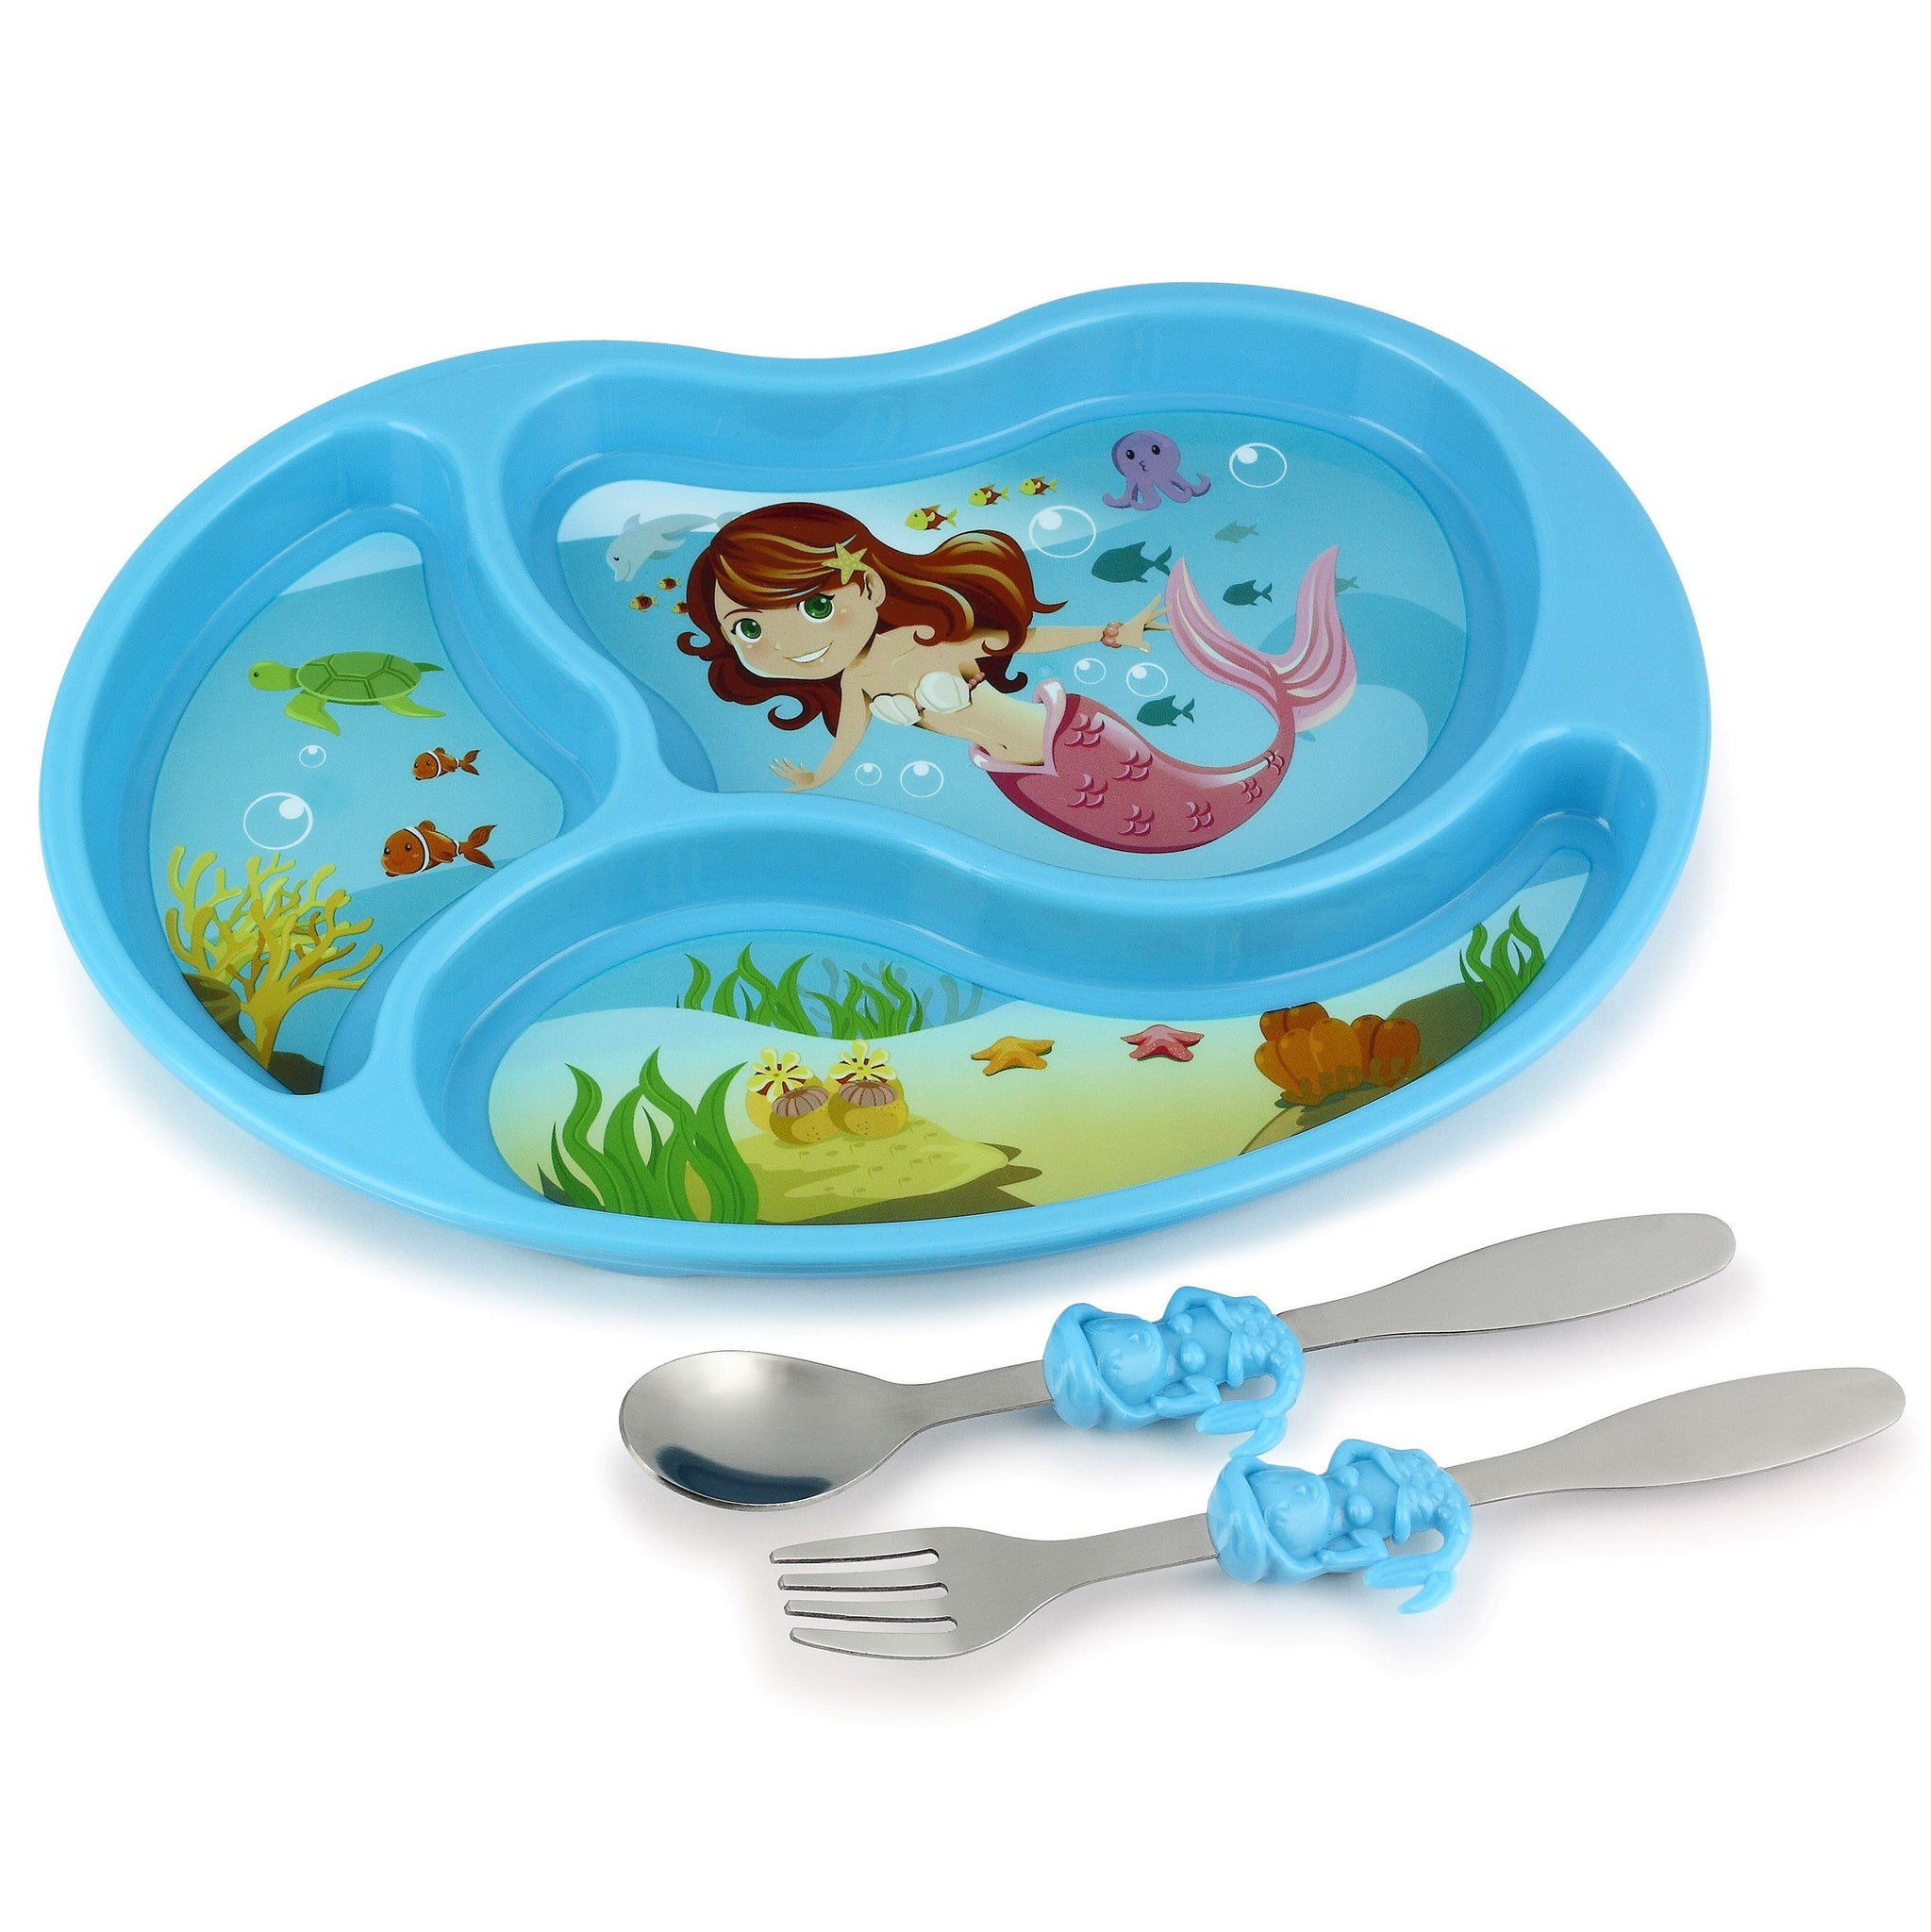 Me Time Mermaid Meal Set - Three LiL Monkeys Three LiL Monkeys